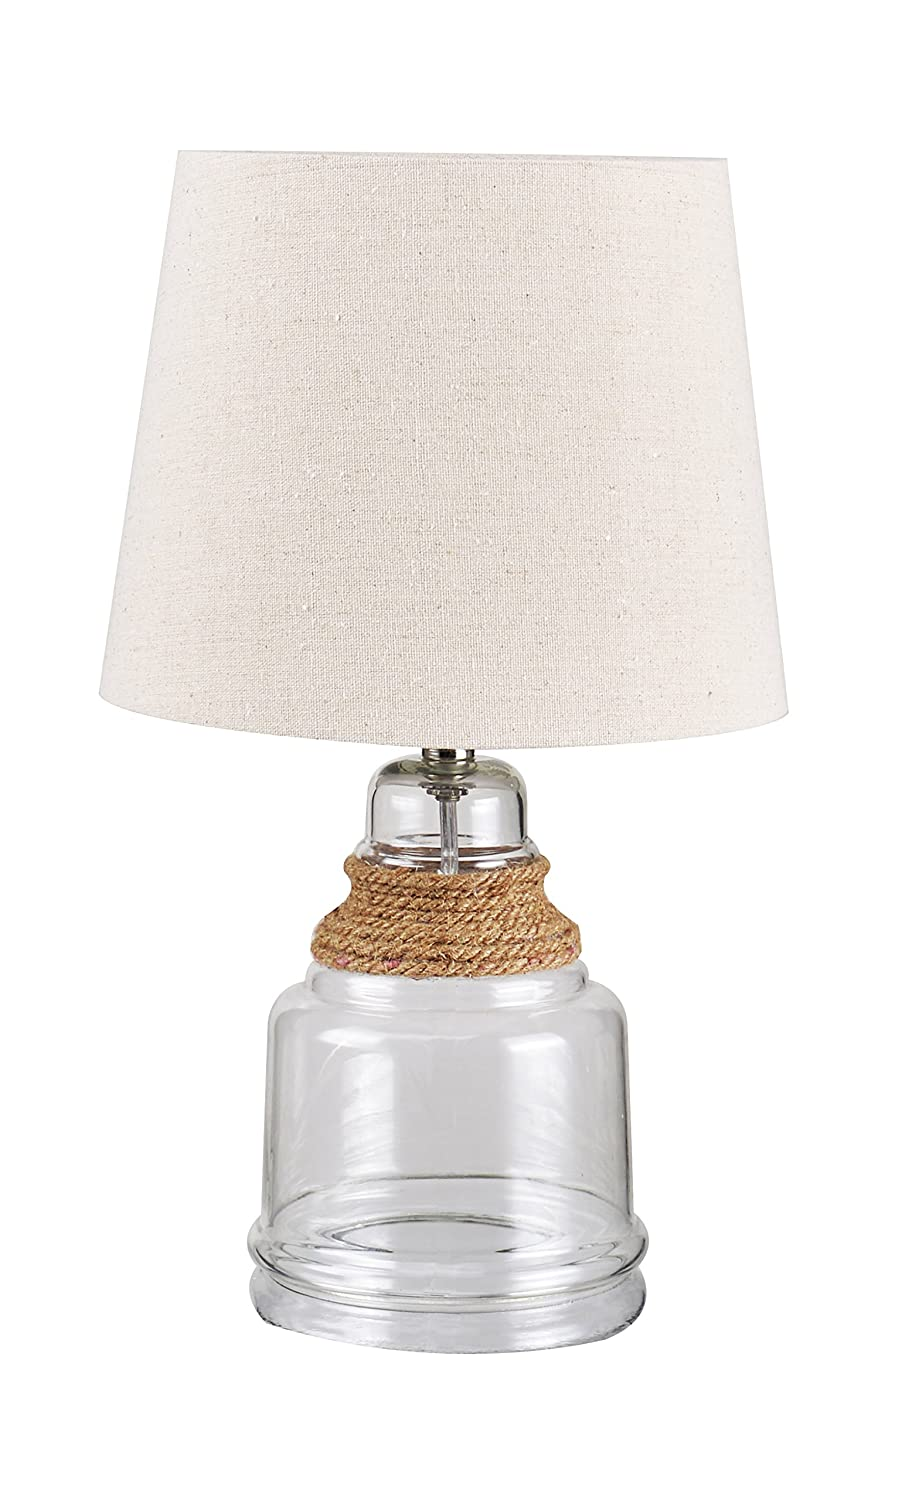 Hart lighting 1001SN1220 Beautility 2-Light Semi-Flush with Fabric Satin Nickel